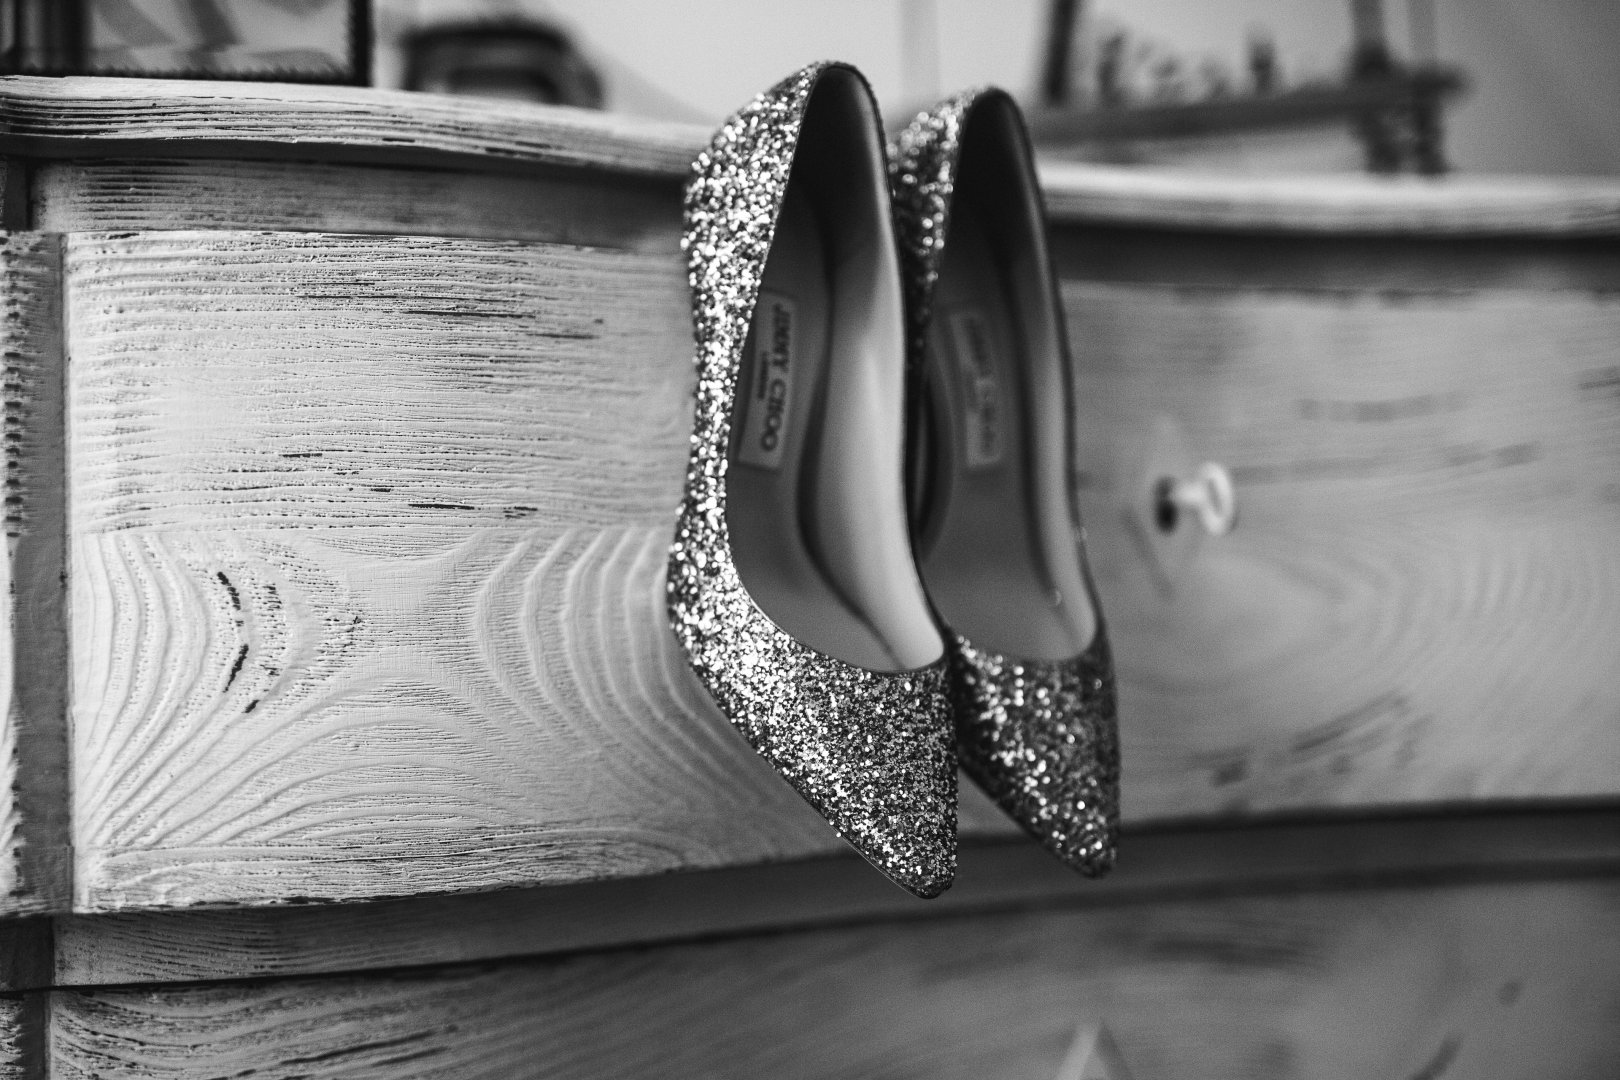 Black Photograph White Footwear Black-and-white Monochrome photography Monochrome Still life photography Shoe Photography Fashion accessory Stock photography Style Silver High heels